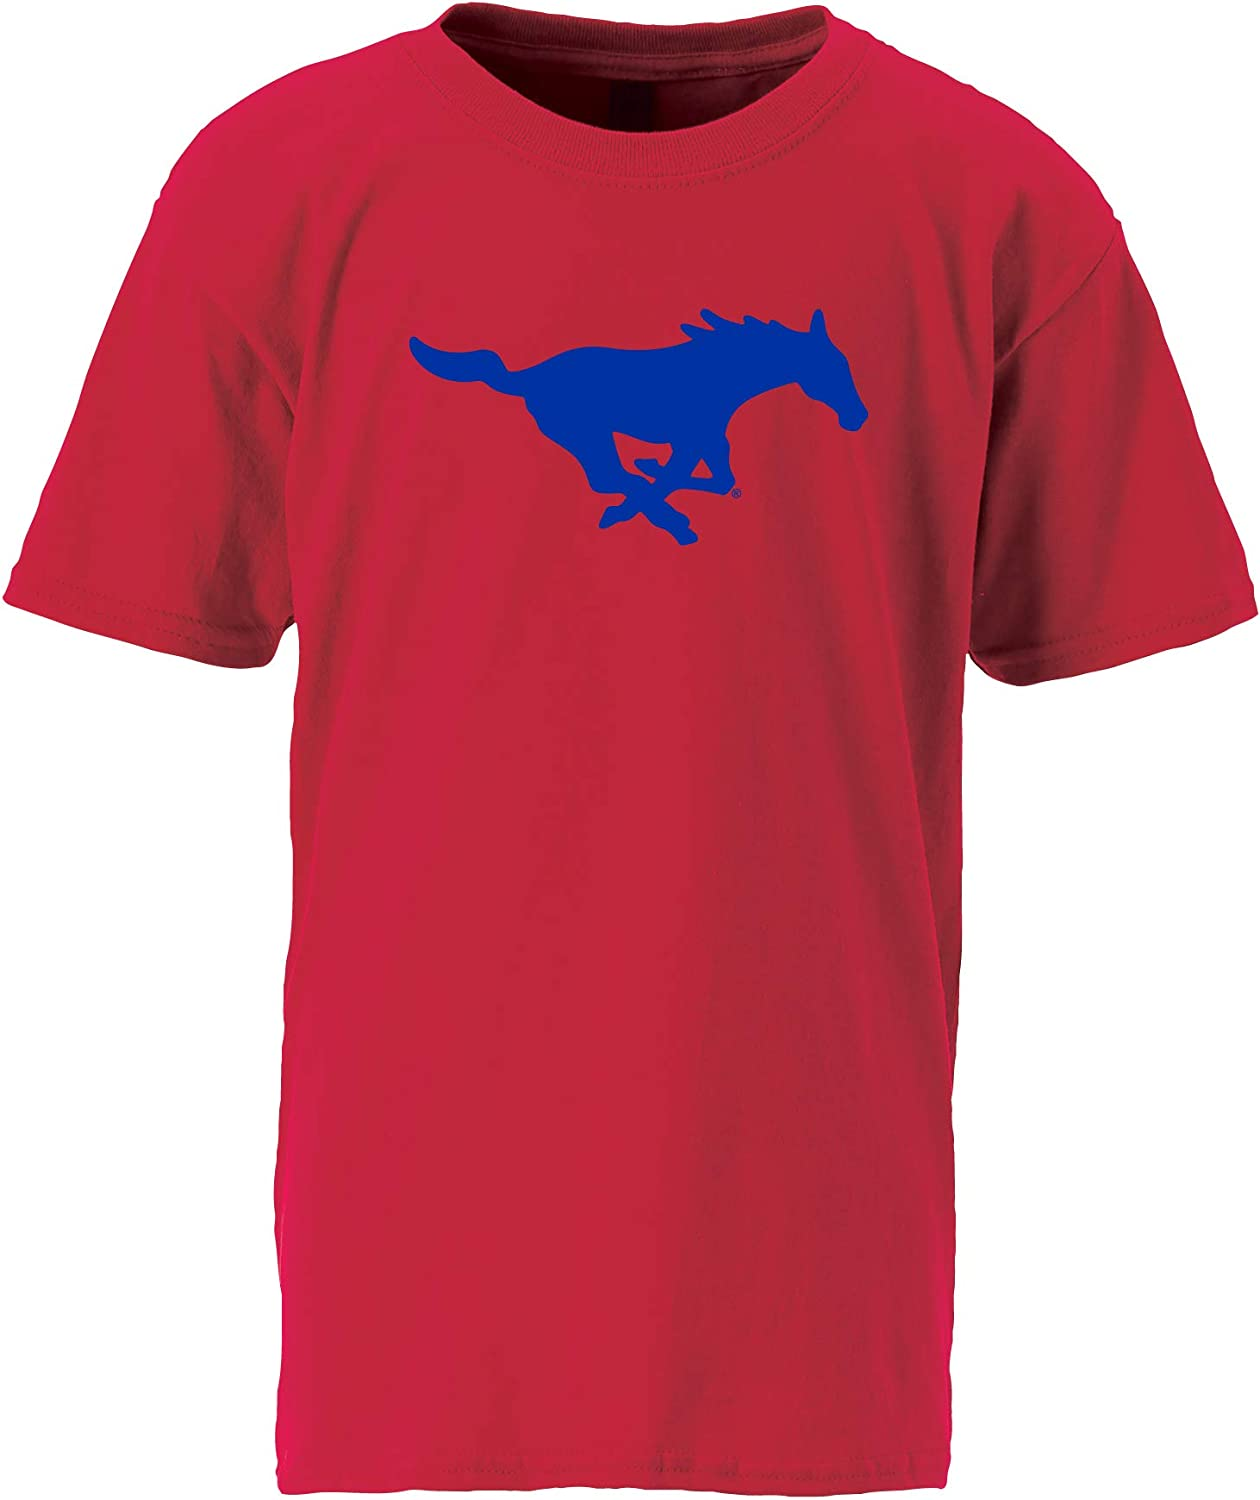 NCAA SMU Mustangs Youth Ouray TeeYouth Ouray Tee